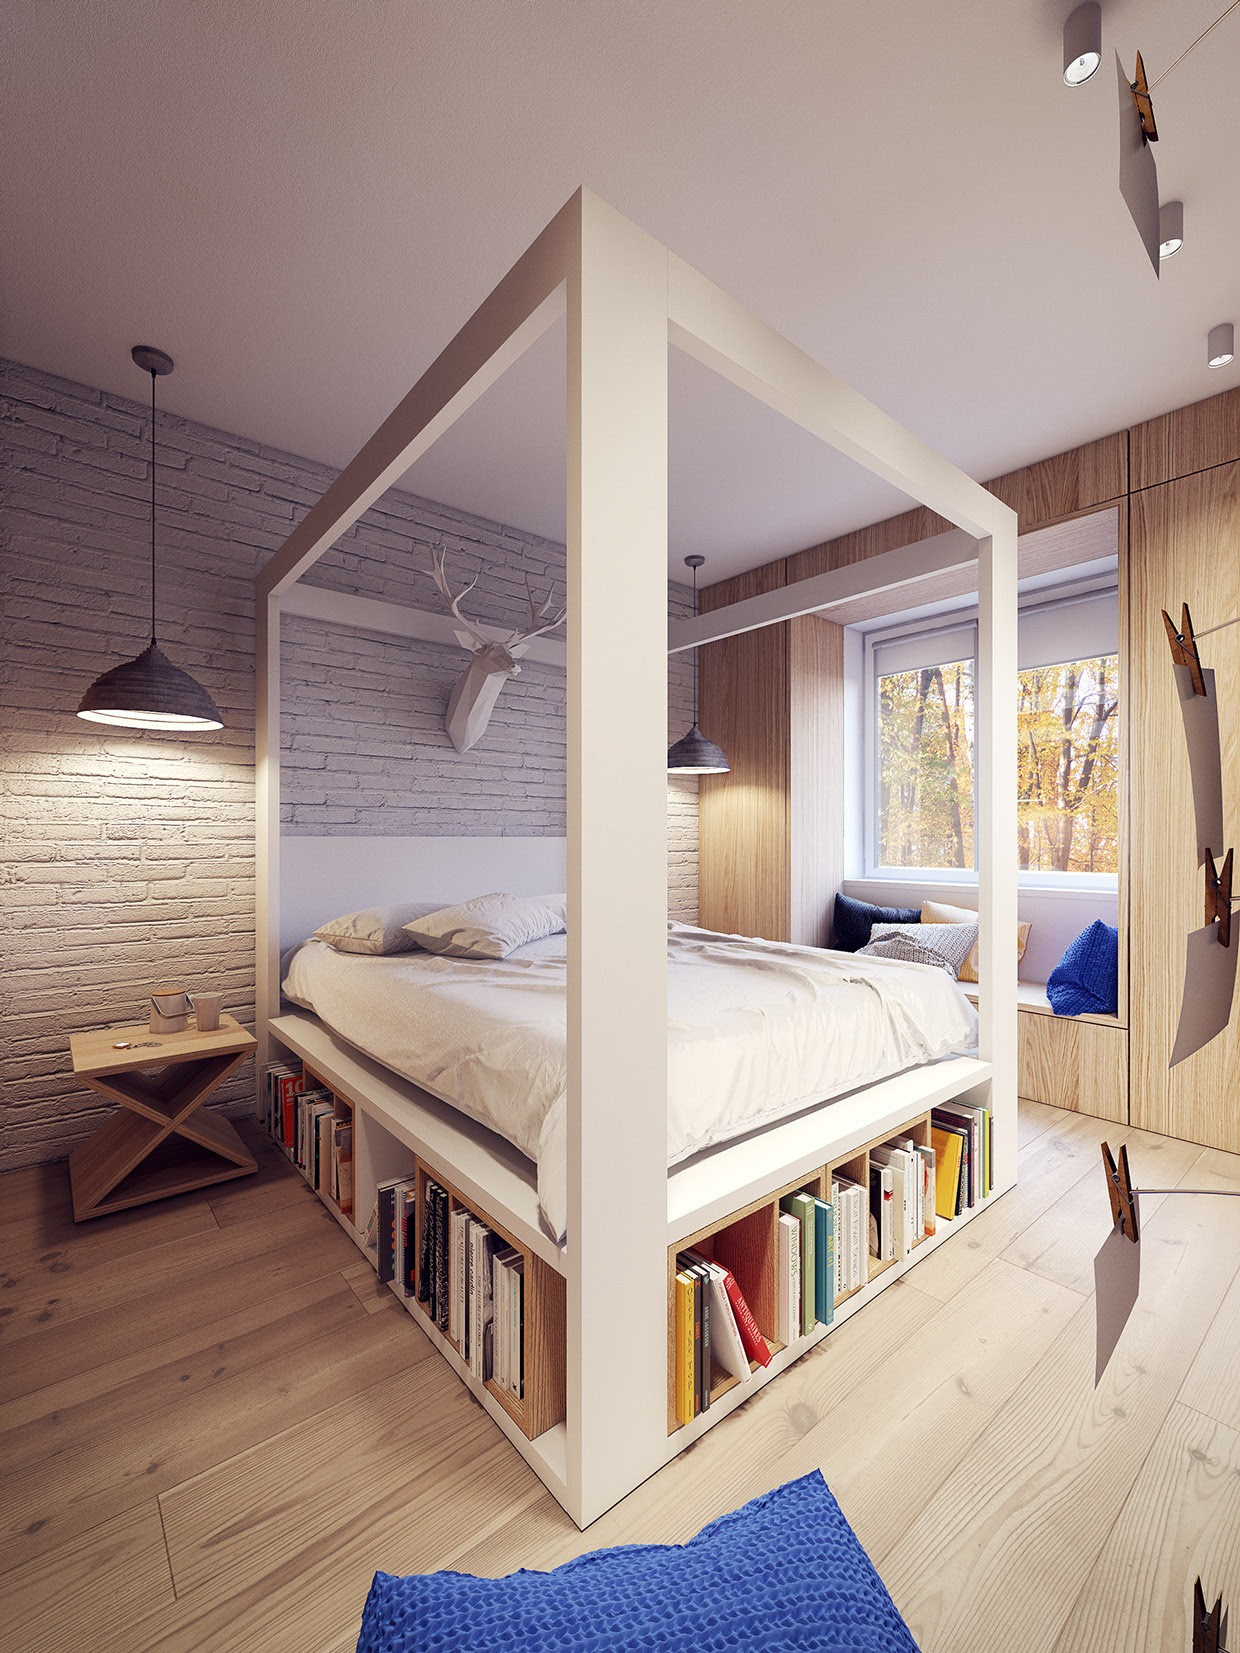 A 60s Inspired Apartment with a Creative Layout and Upbeat